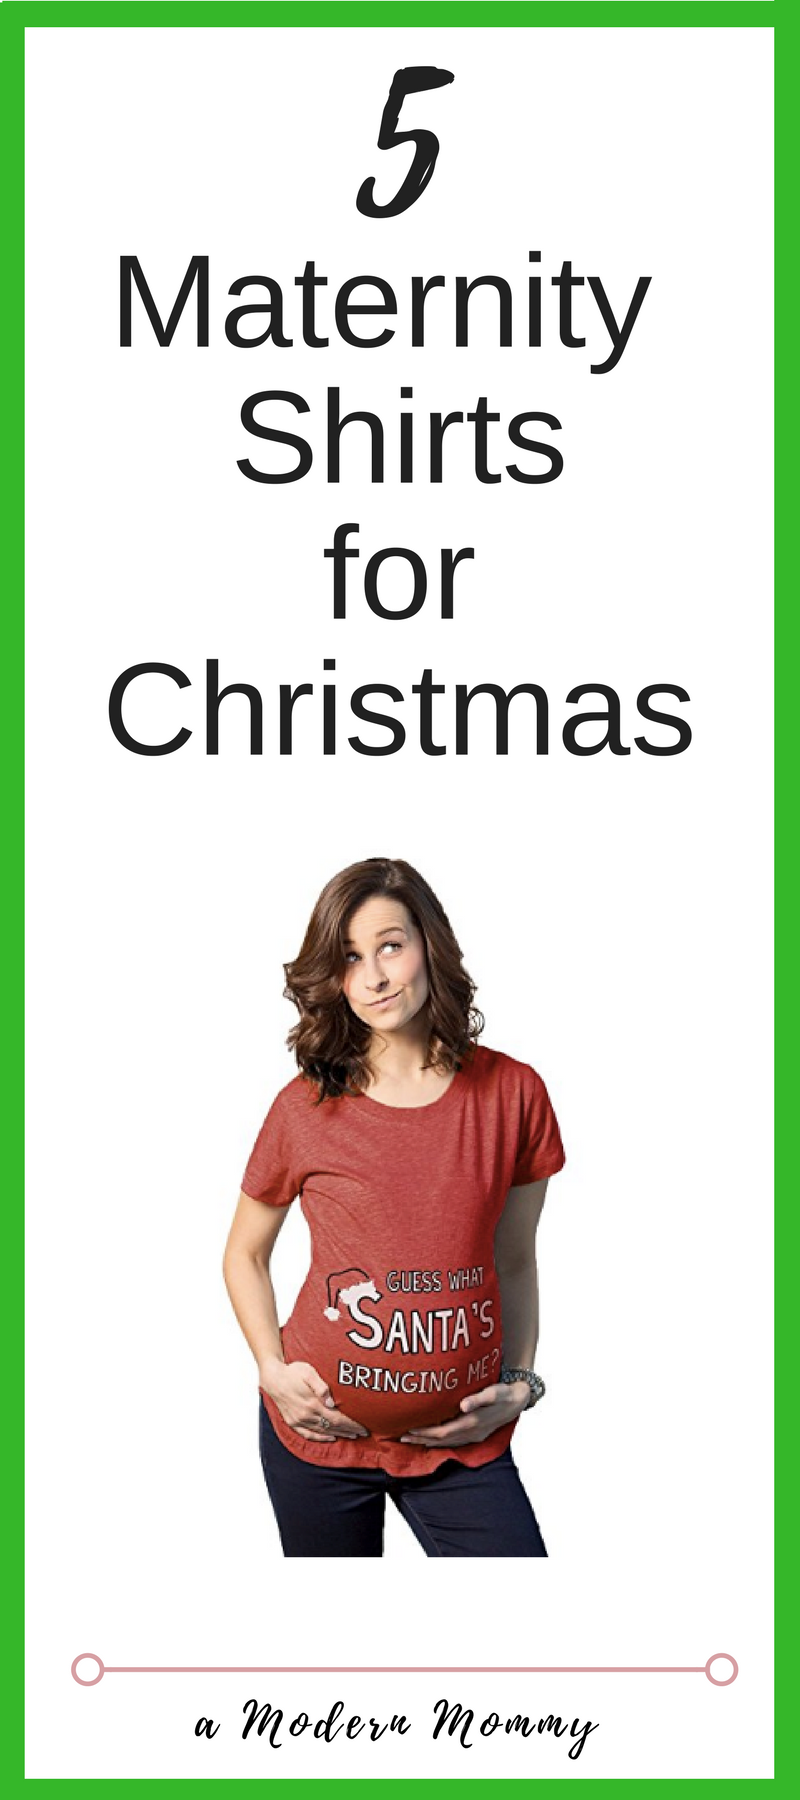 b5239ca0f16a7 Maternity Shirts during the Holidays! Christmas time is here and your baby  is near. Celebrate the gift of your baby and the humor that can be found.